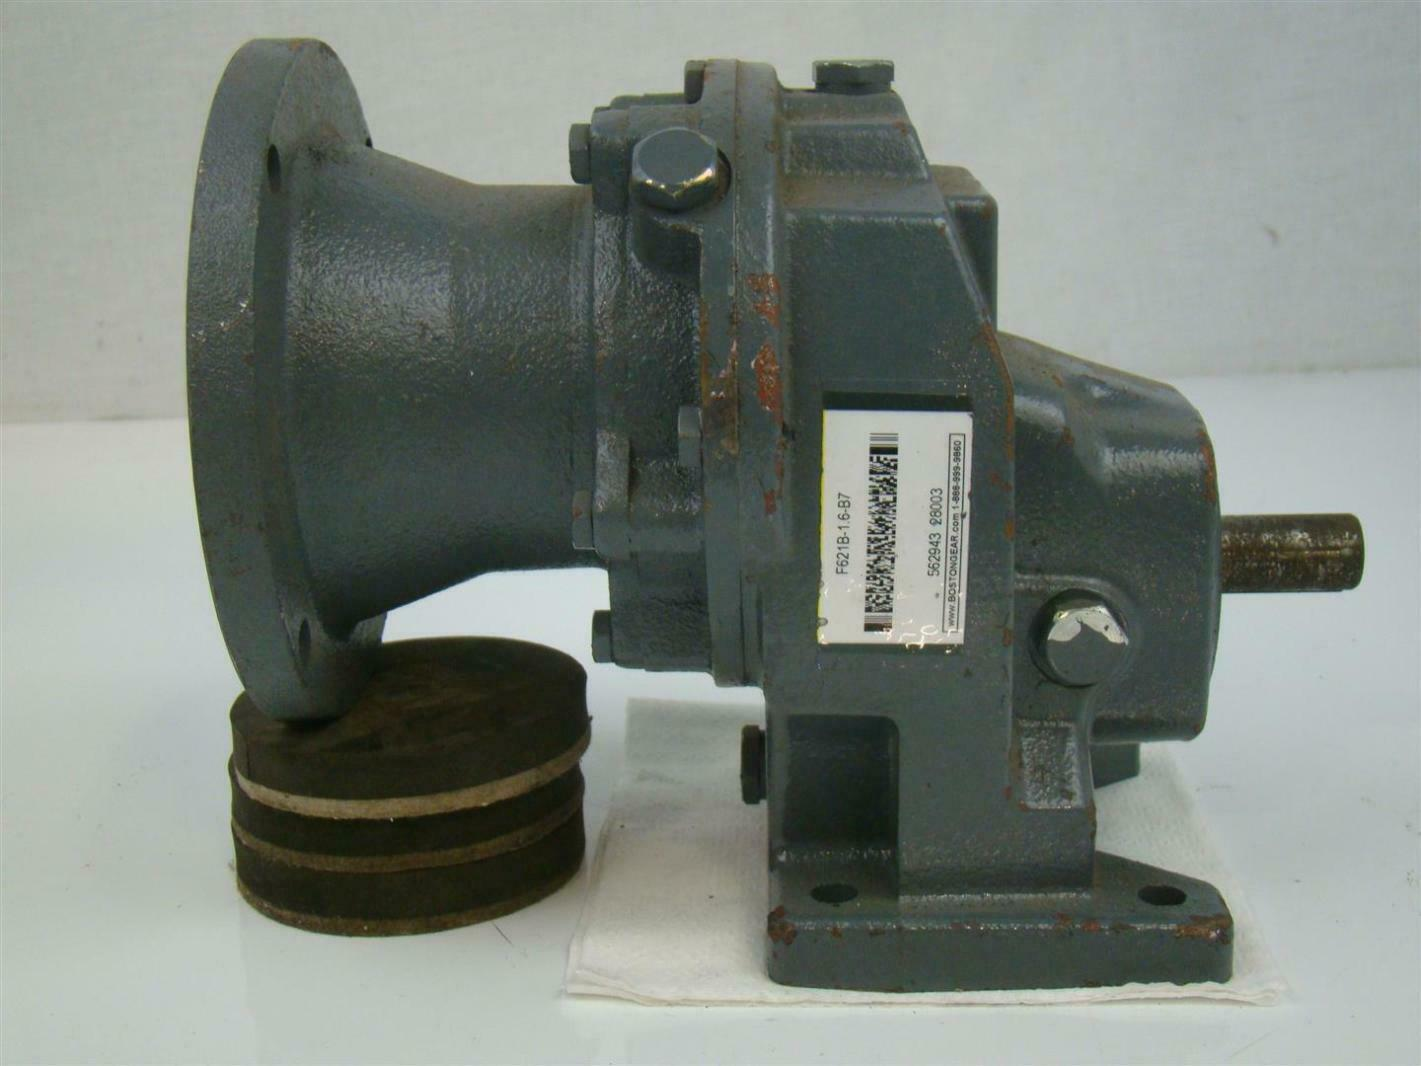 Boston Gear Reducer 6 1 Ratio F621b 1 6 B7 Joseph Fazzio